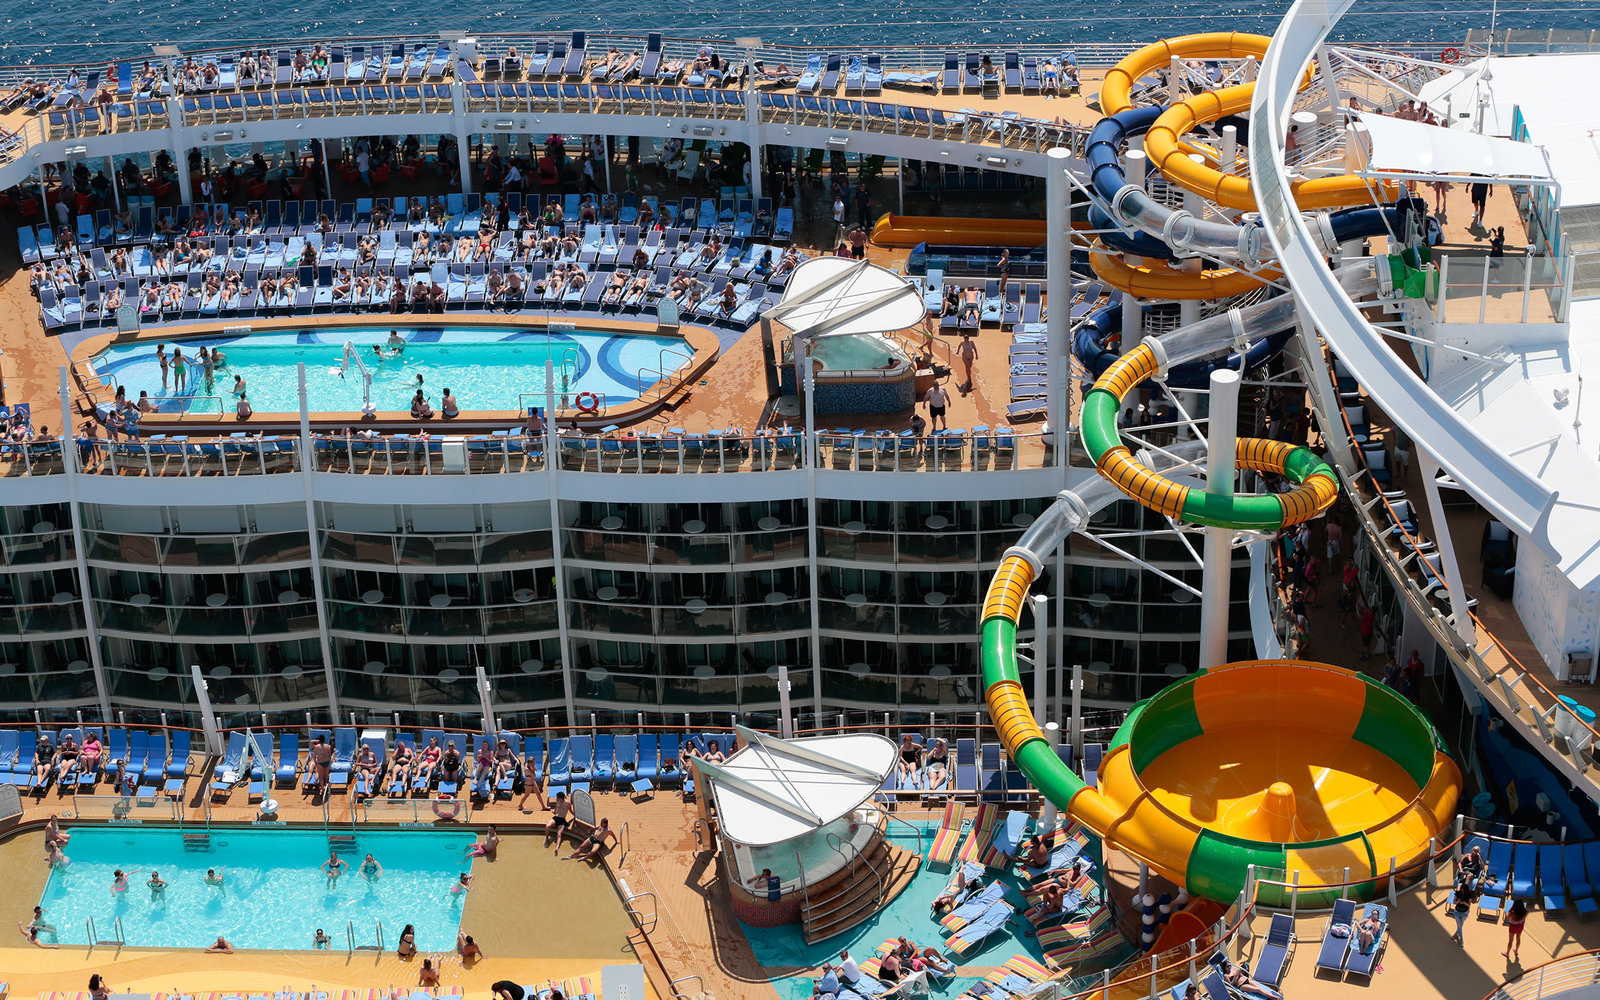 Explore The Beauty Of Caribbean: Royal Caribbean's Harmony Of The Seas